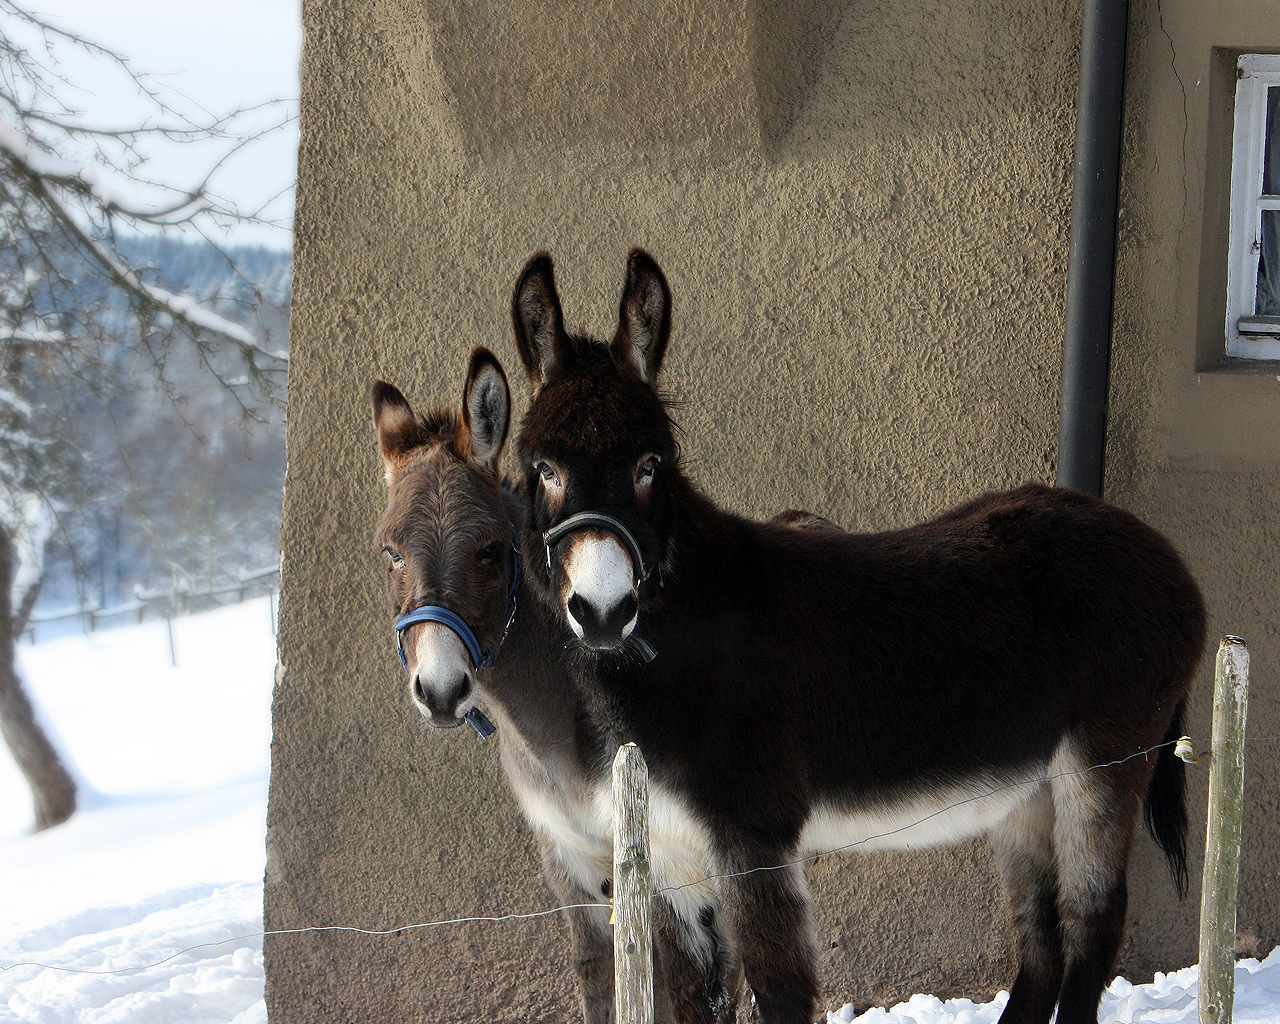 Cute-Donkeys-donkeys-25772312-1280-1024